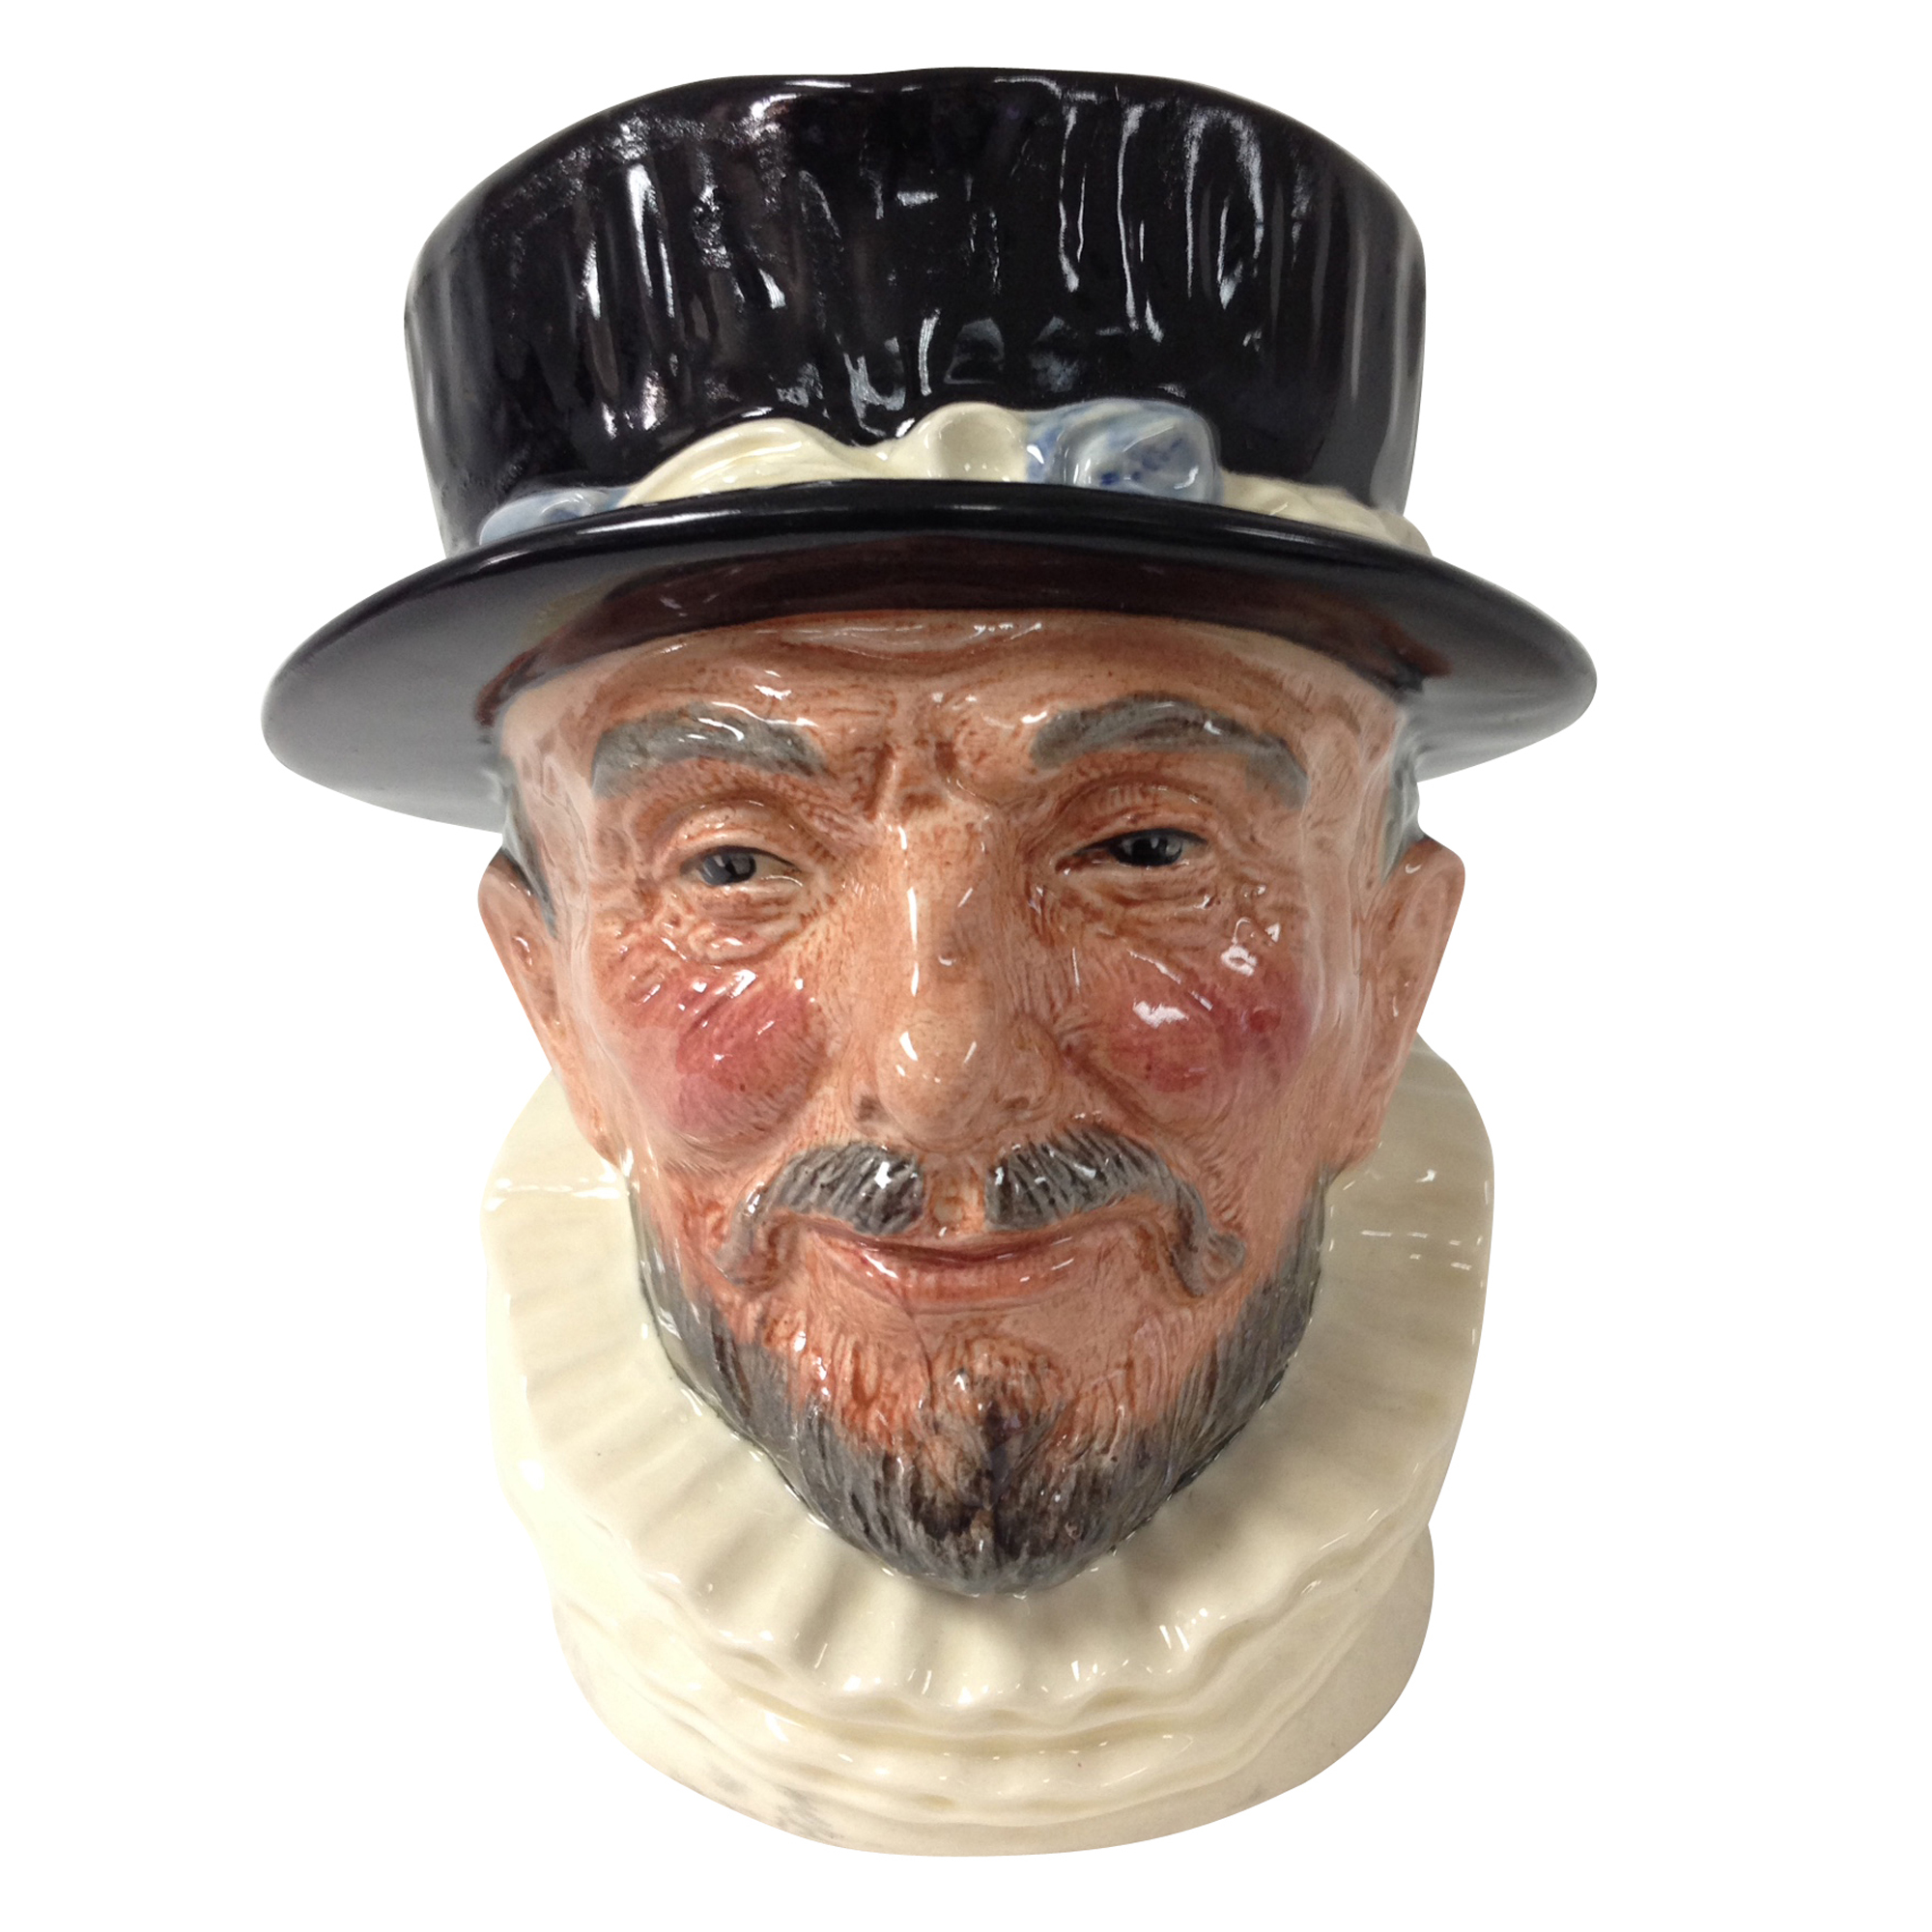 Beefeater 'ER' White collar with black hat D6206 - Large - Royal Doulton Character Jug